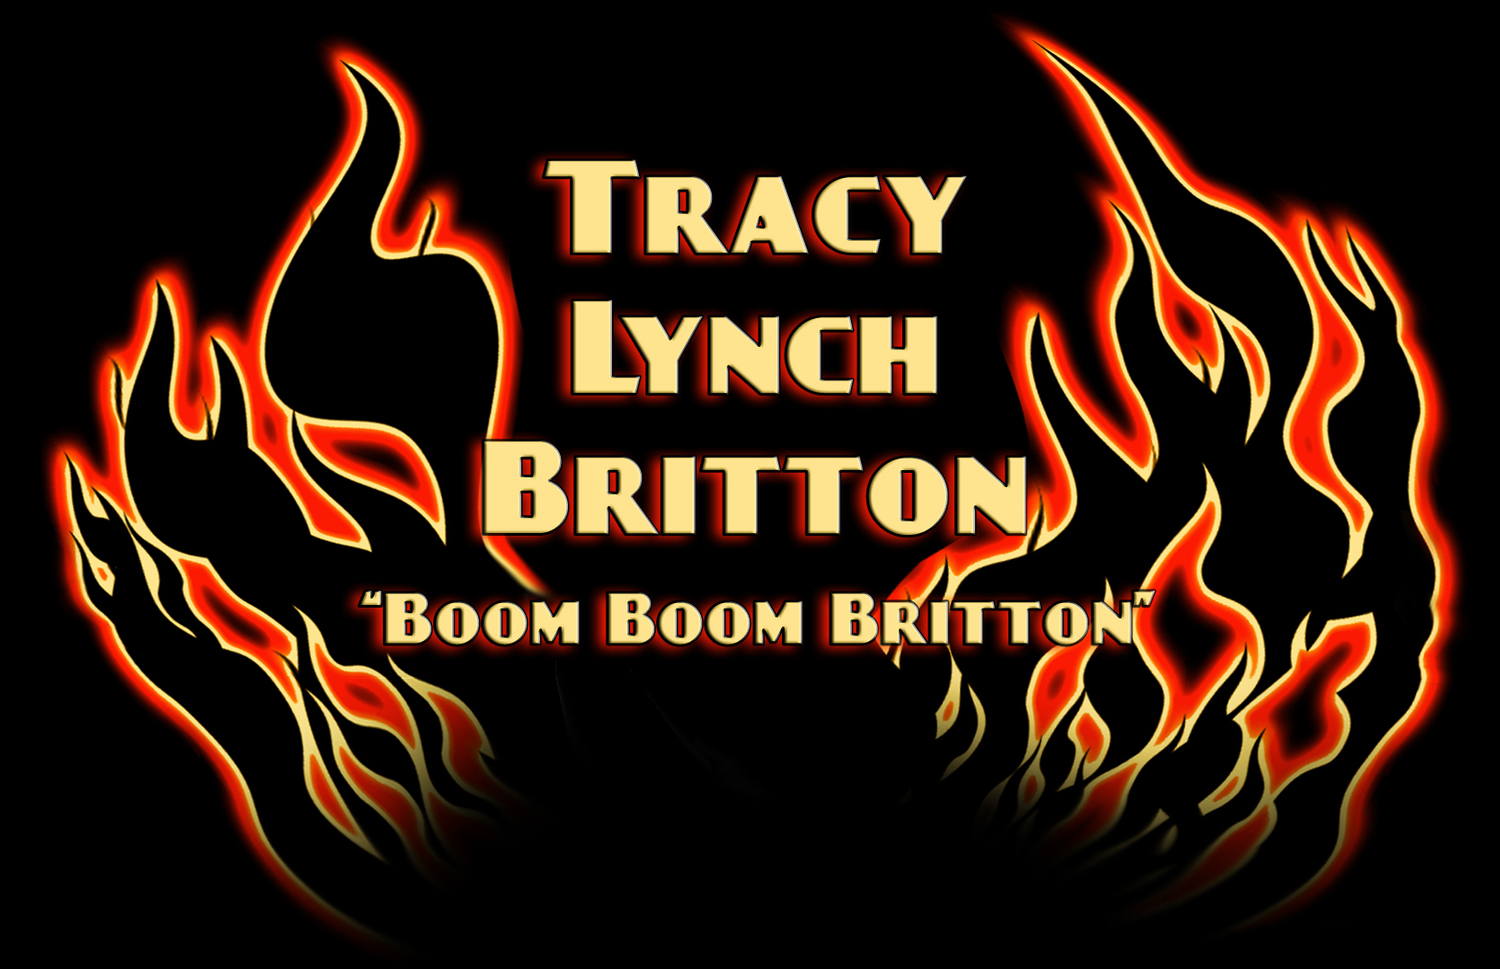 TRACY LYNCH BRITTON